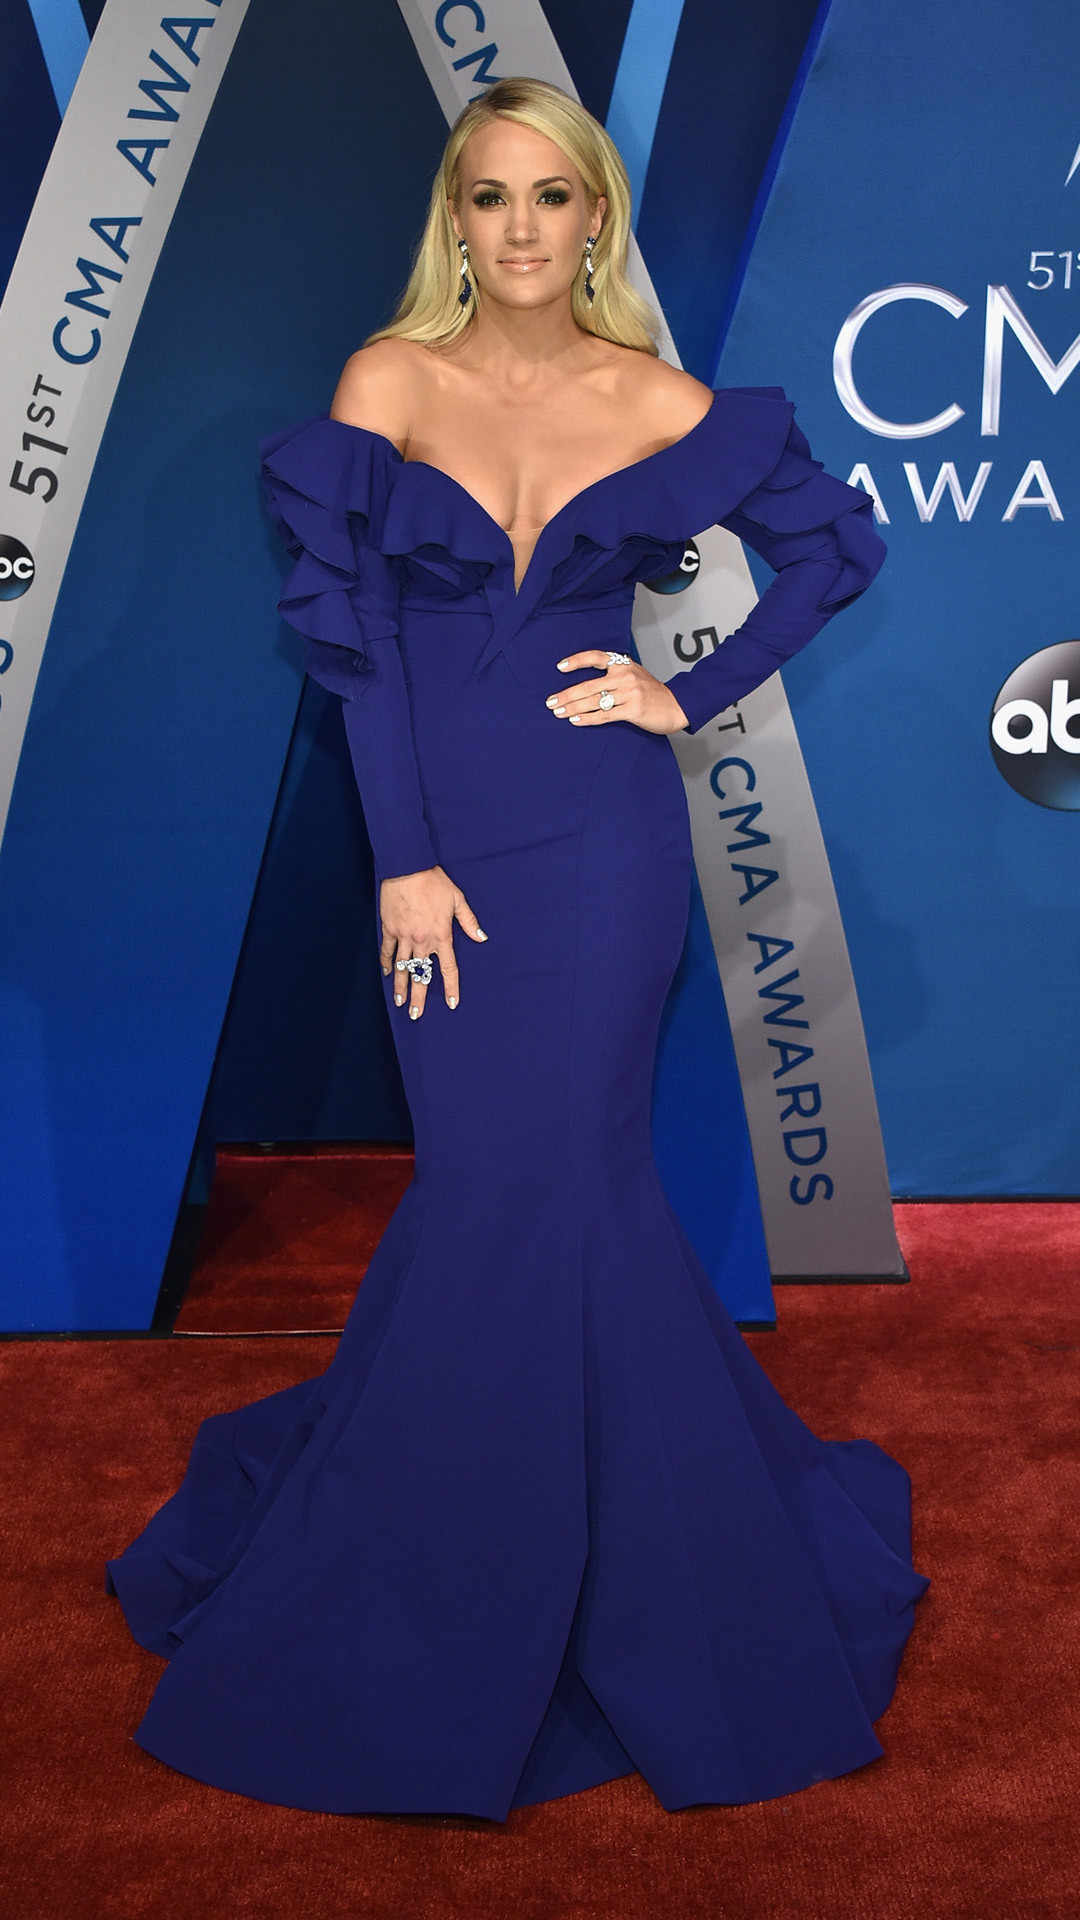 rs 1080x1920 171108153442 1080x1920 carrie underwood CMAs 1117 jaw